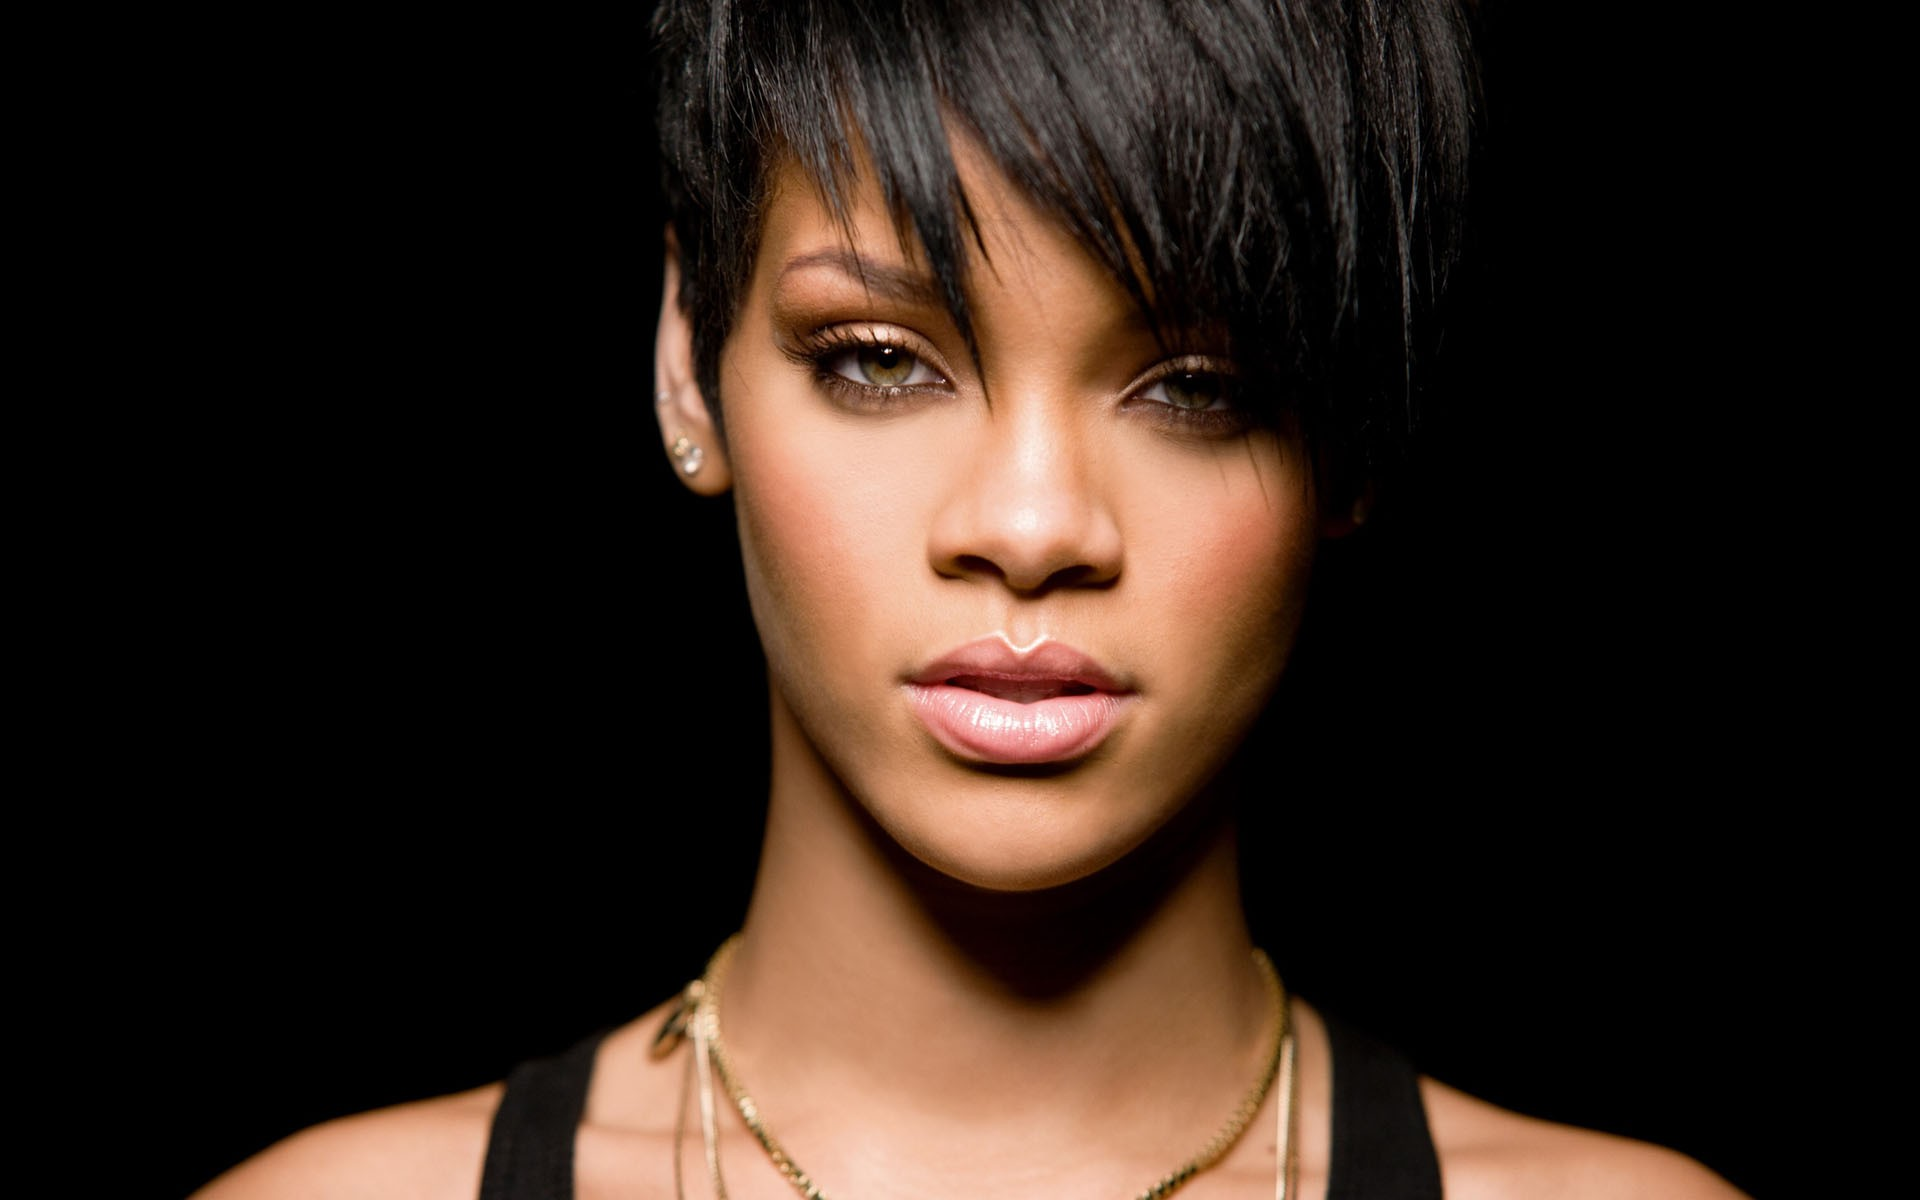 Rihanna Short Hair 193.87 Kb